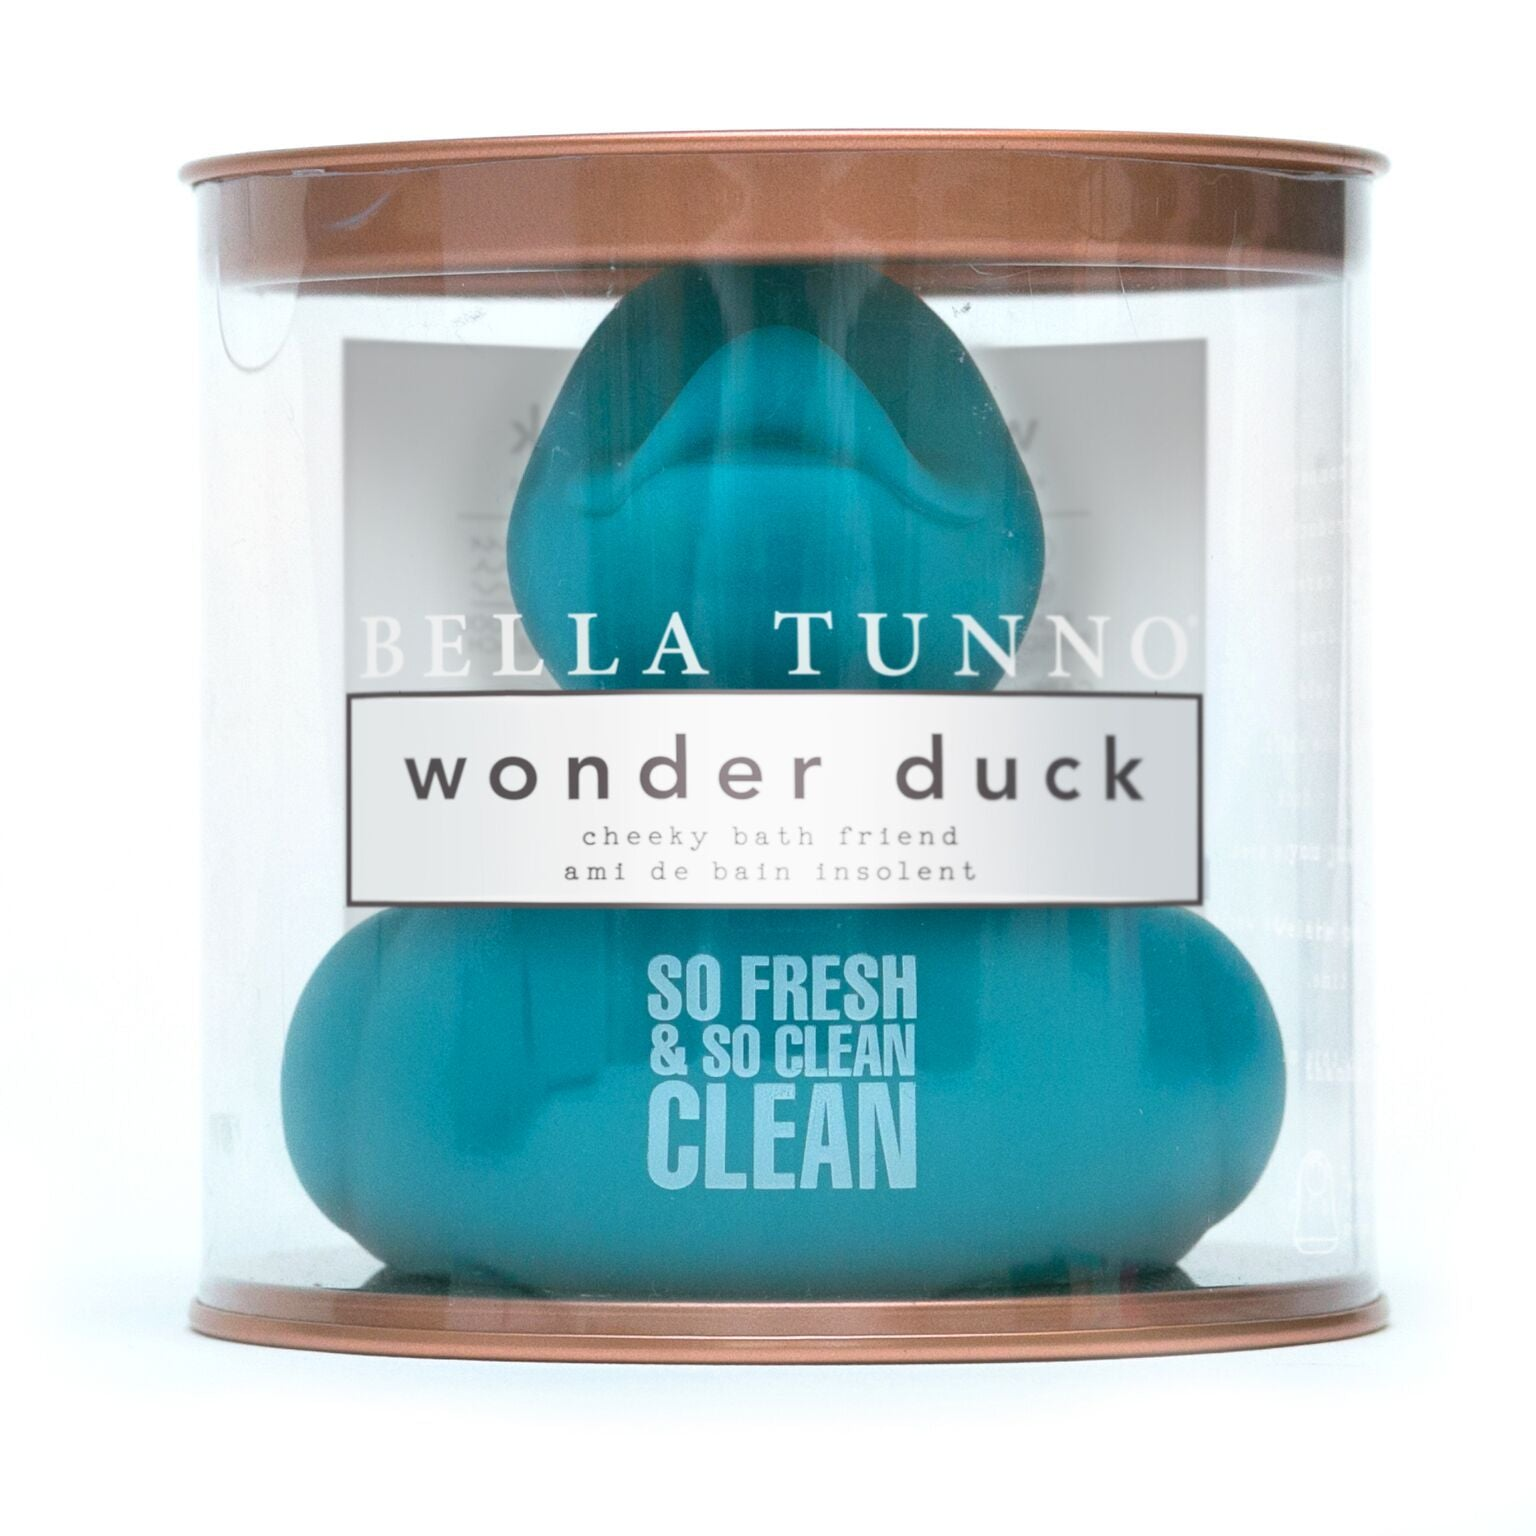 Bella Tunno Wonder Duck